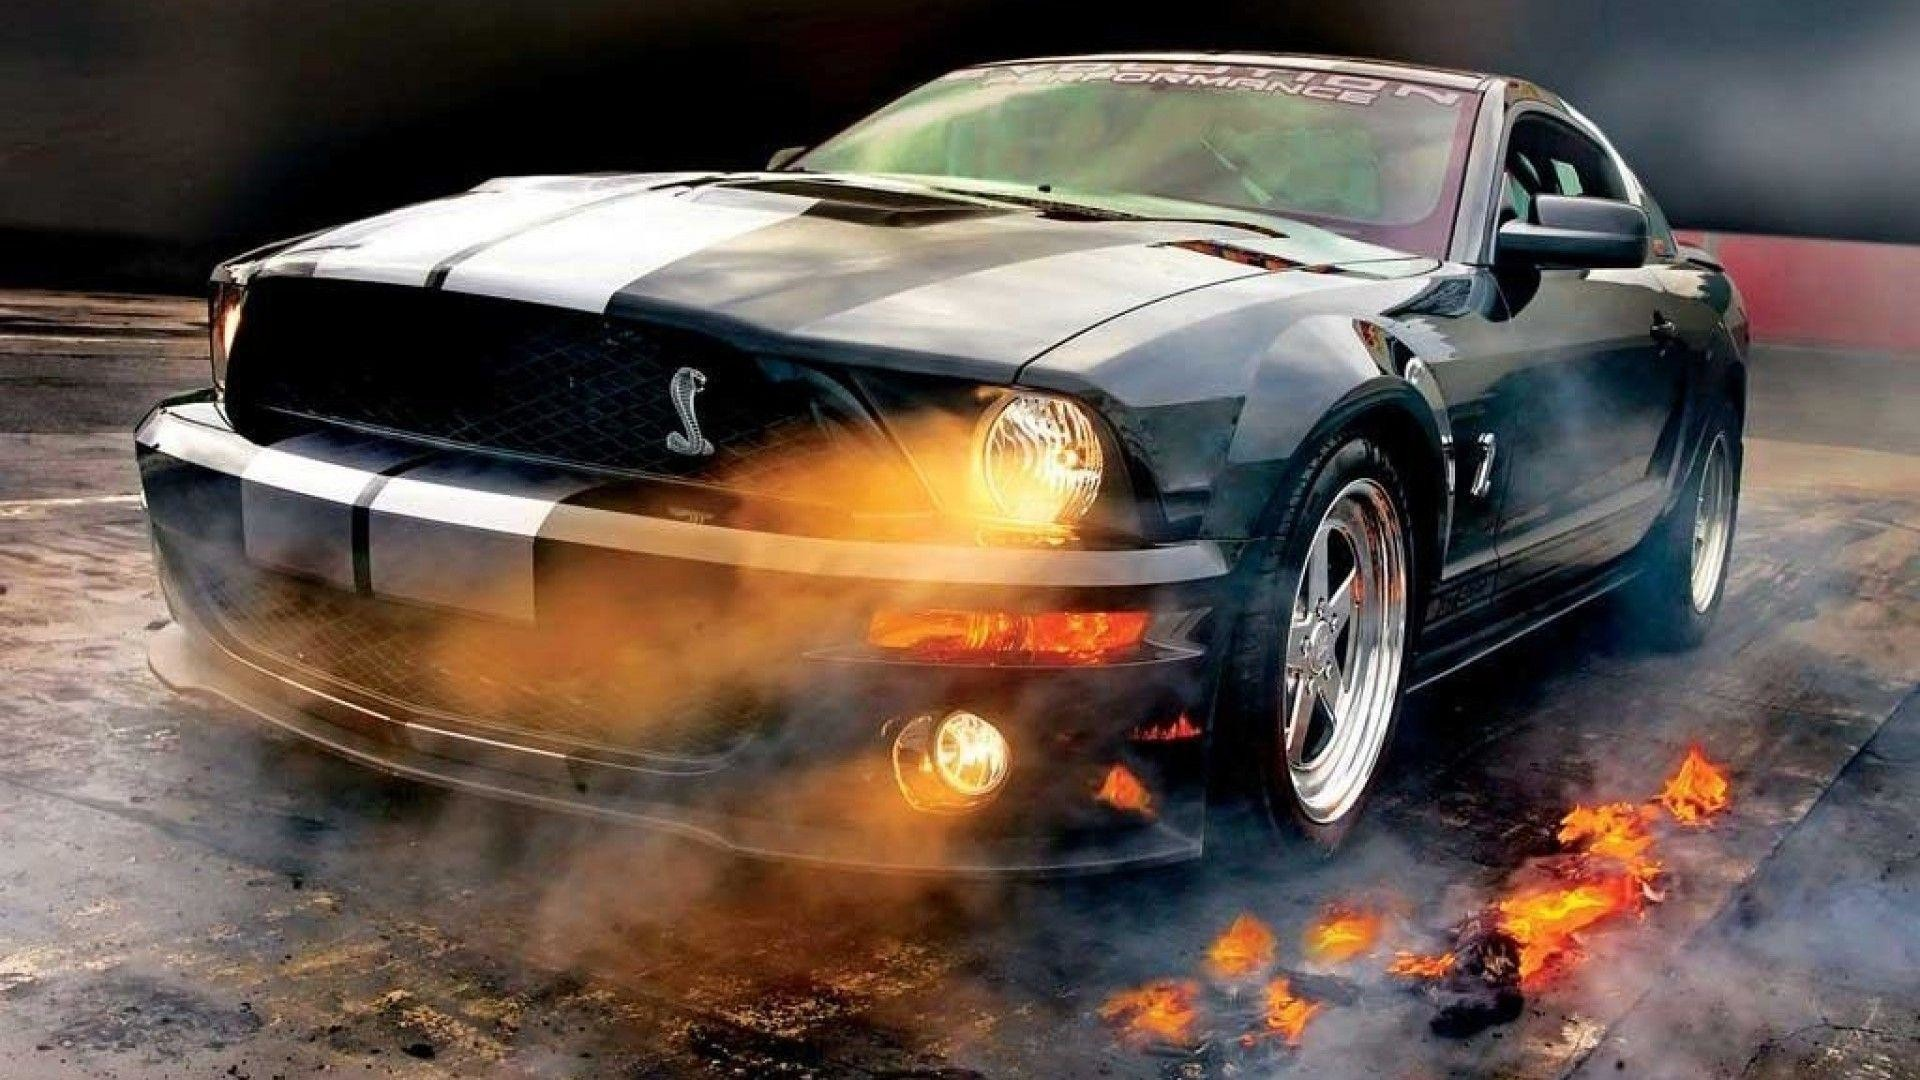 Ford Mustang Wallpaper 1798 px ~ FreeWallSource.